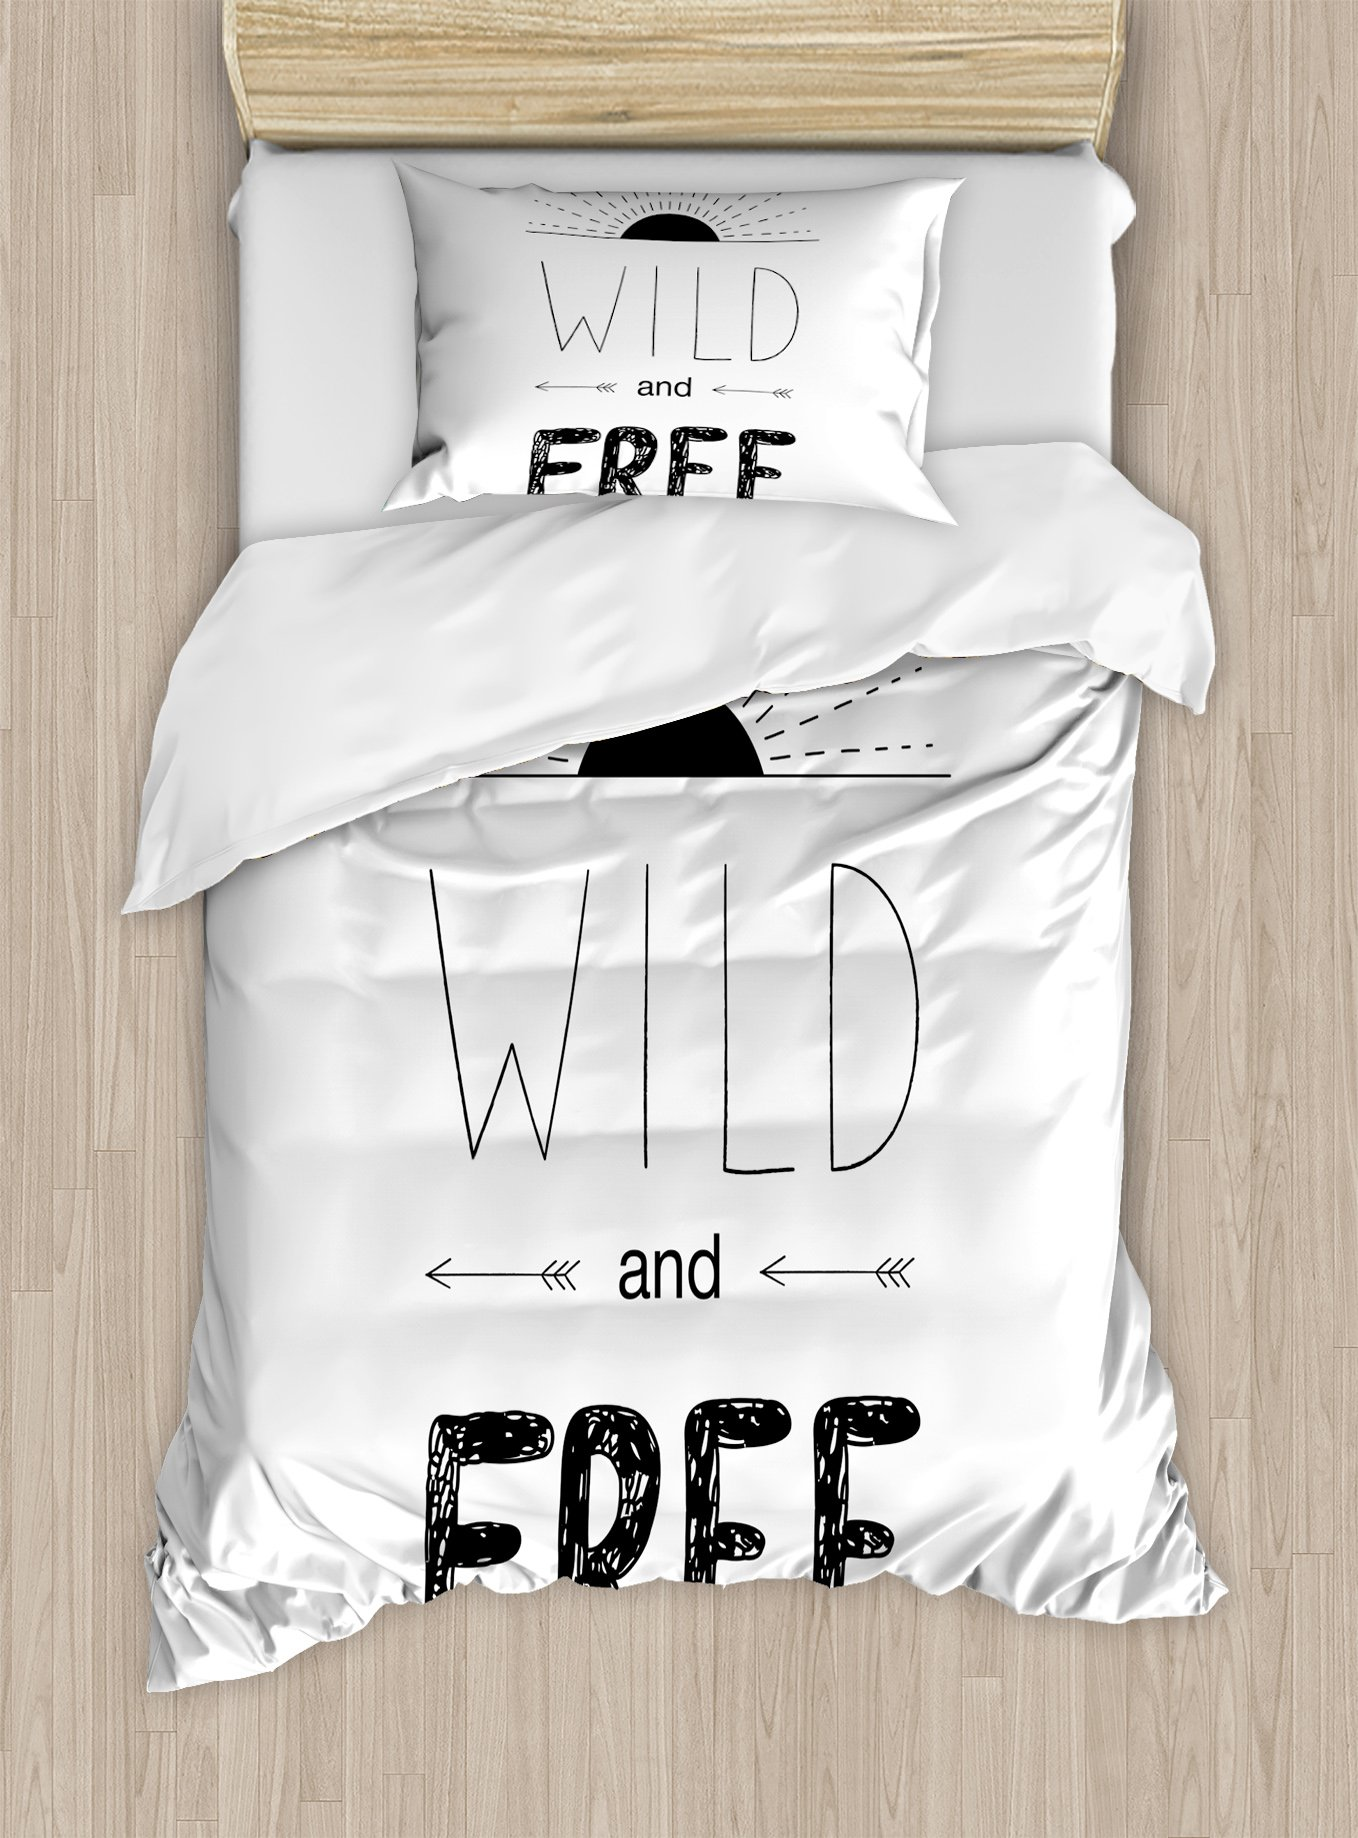 Ambesonne Adventure Duvet Cover Set Twin Size, Abstract Hand Drawn Rising Sun Figure Arrows Wild Free Forest Sketch Art Design, Decorative 2 Piece Bedding Set with 1 Pillow Sham, Black White